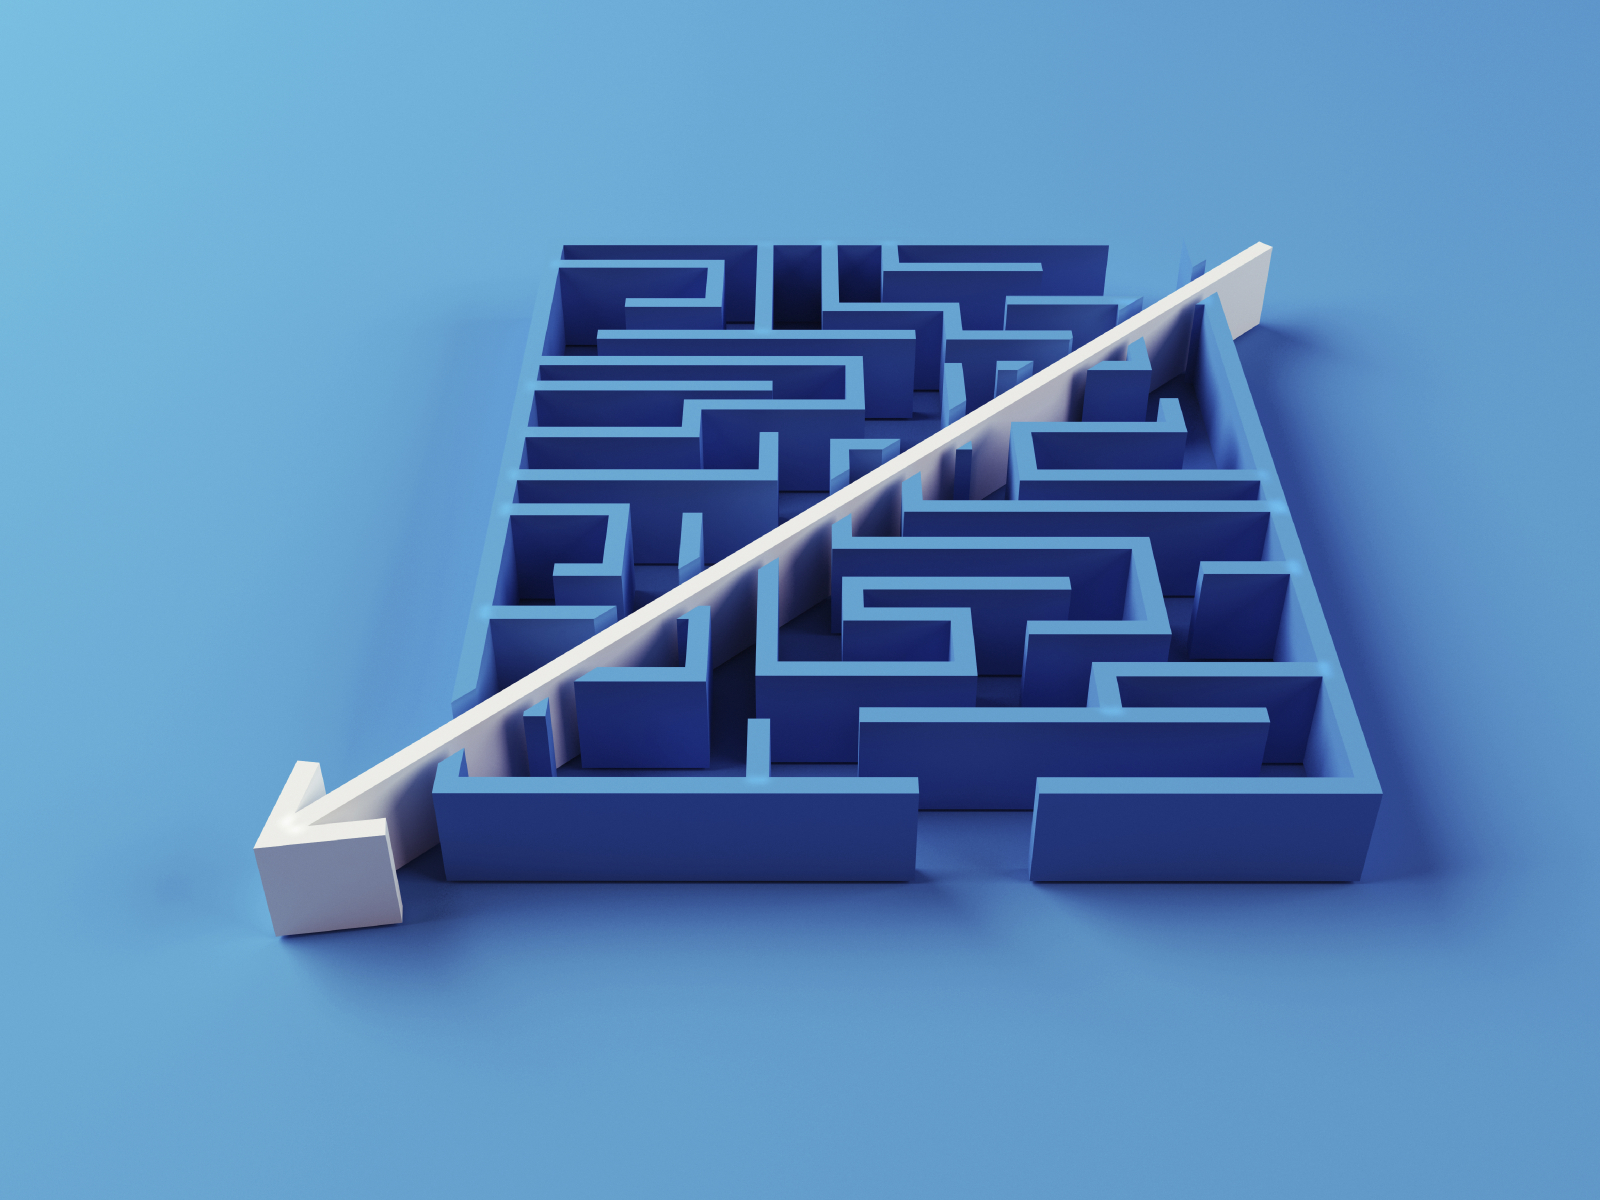 Cut through the maze by simplifying Commercial Card rules, policies and procedures.